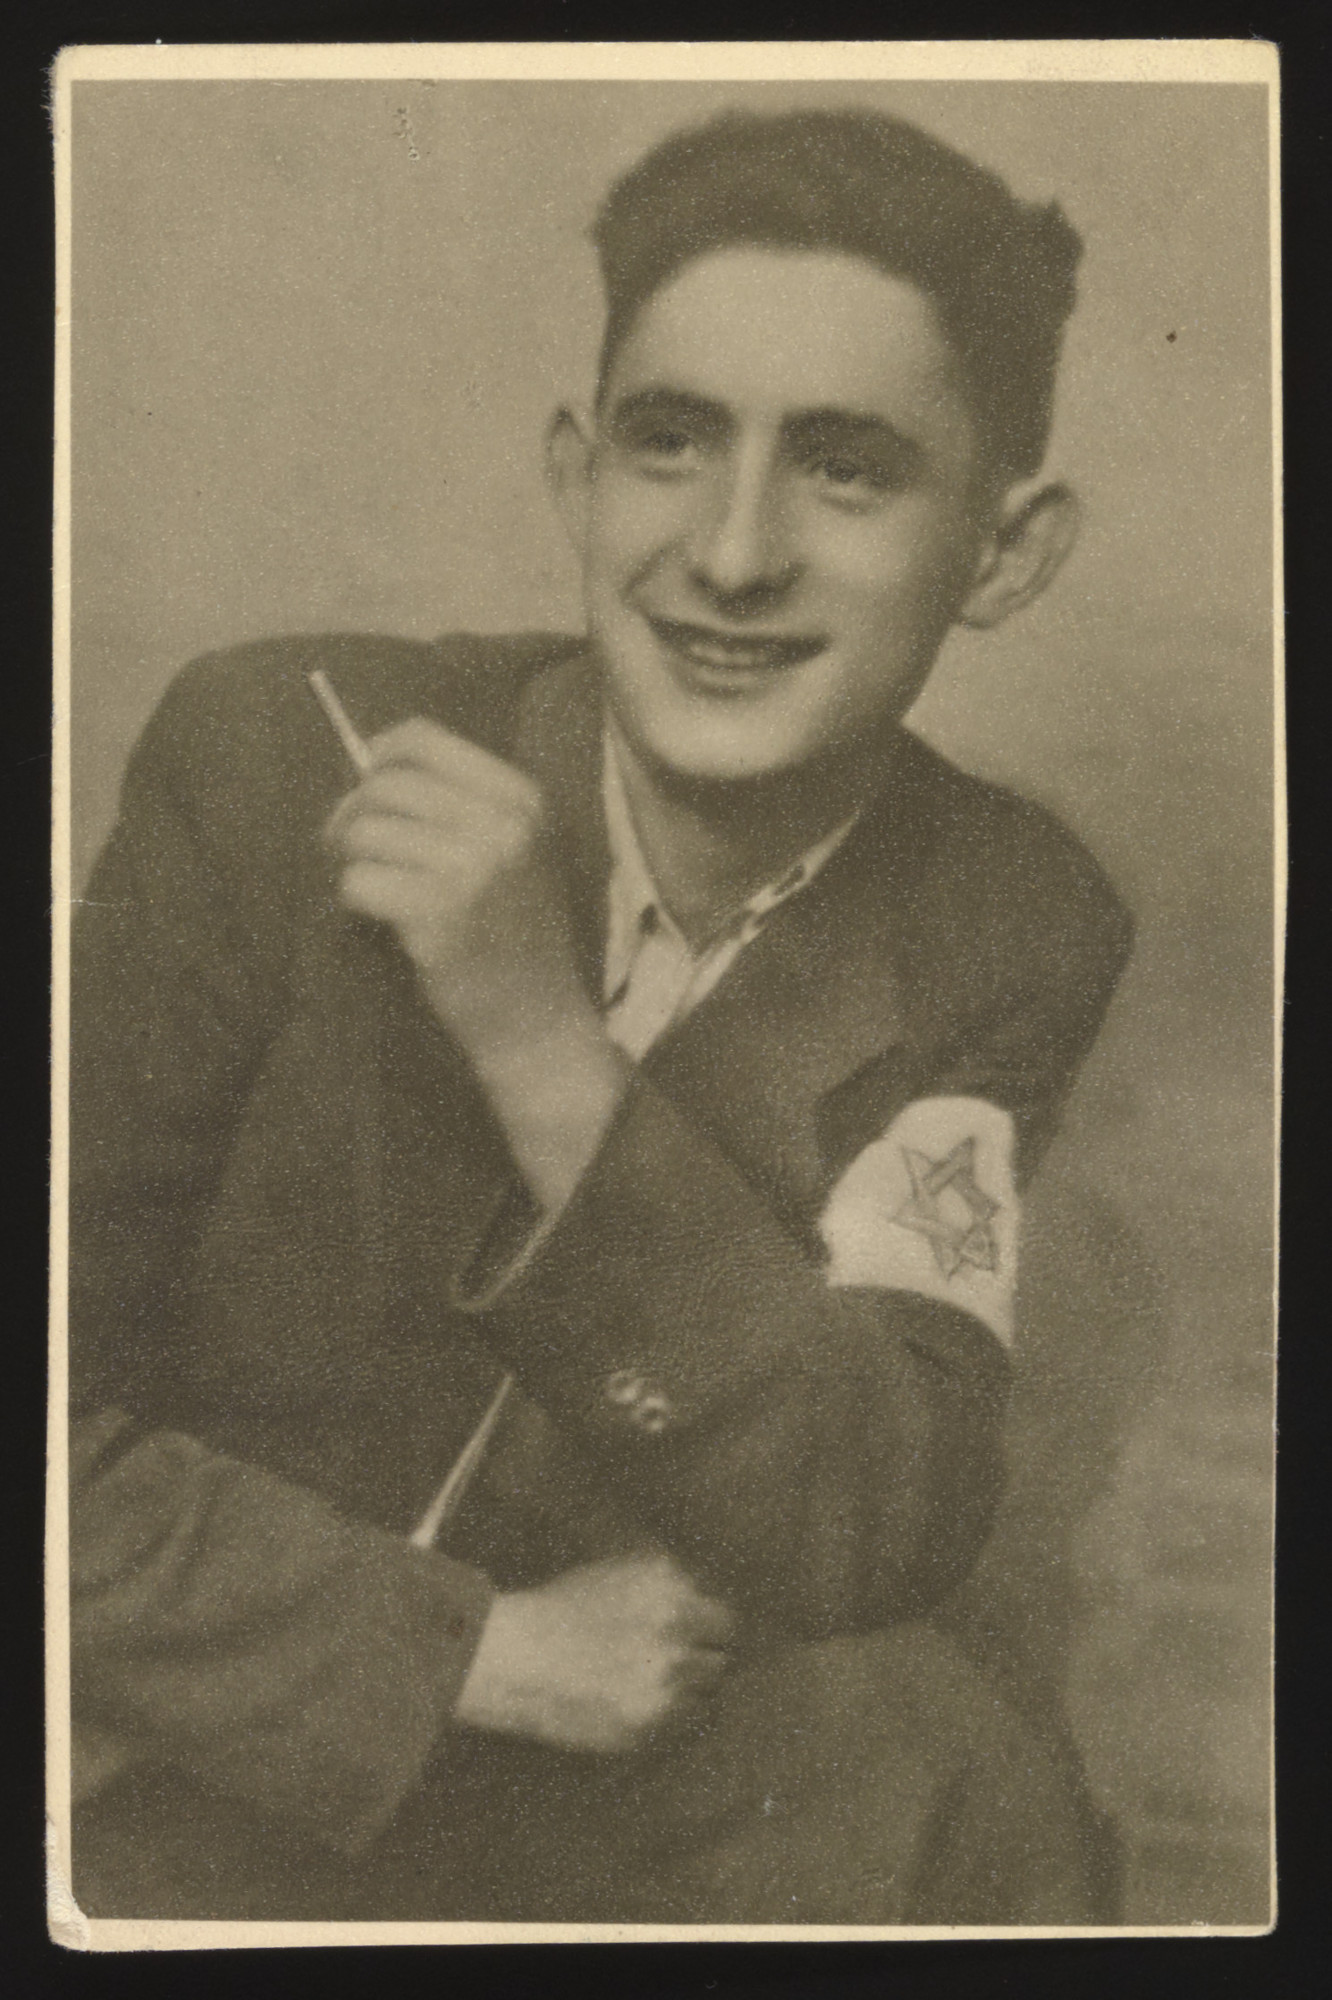 Close-up portrait of a young man wearing an armband with a Star of David holding a cigarette in the Radom ghetto.  Pictured is Szajek Birenbaum.  He worked in the ghetto as an electrician and perished in the Holocaust.